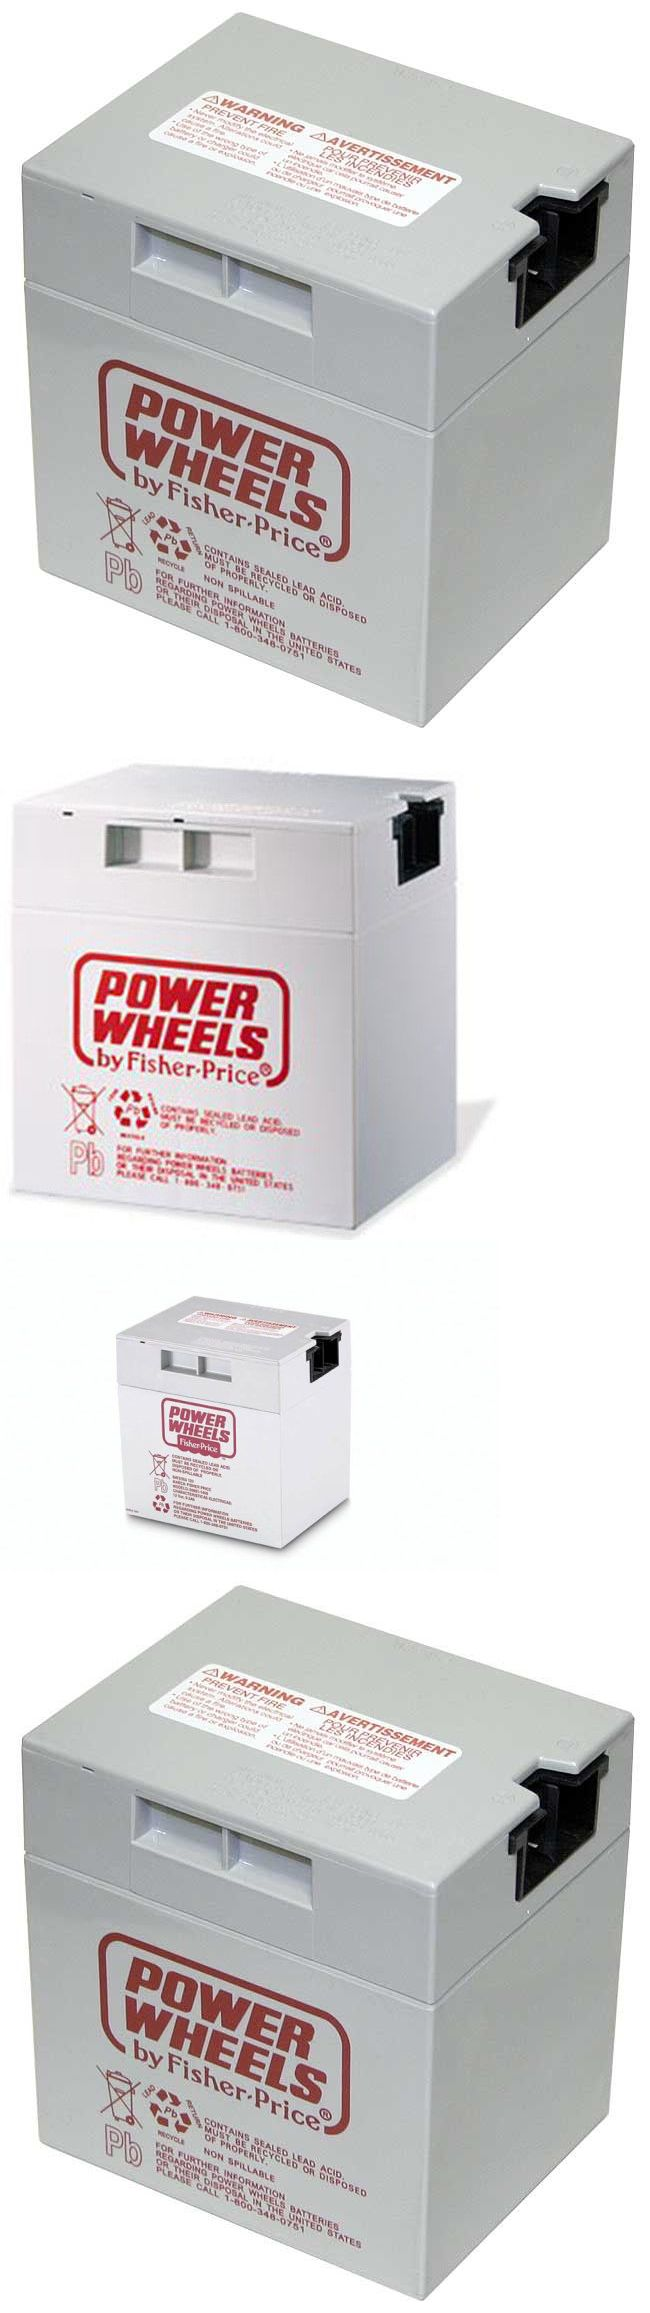 Ride On Toys and Accessories 145944: New Barbie Jammin Jeep Replacement Battery Power Wheels 12 Volt Mattel -> BUY IT NOW ONLY: $162.95 on eBay!